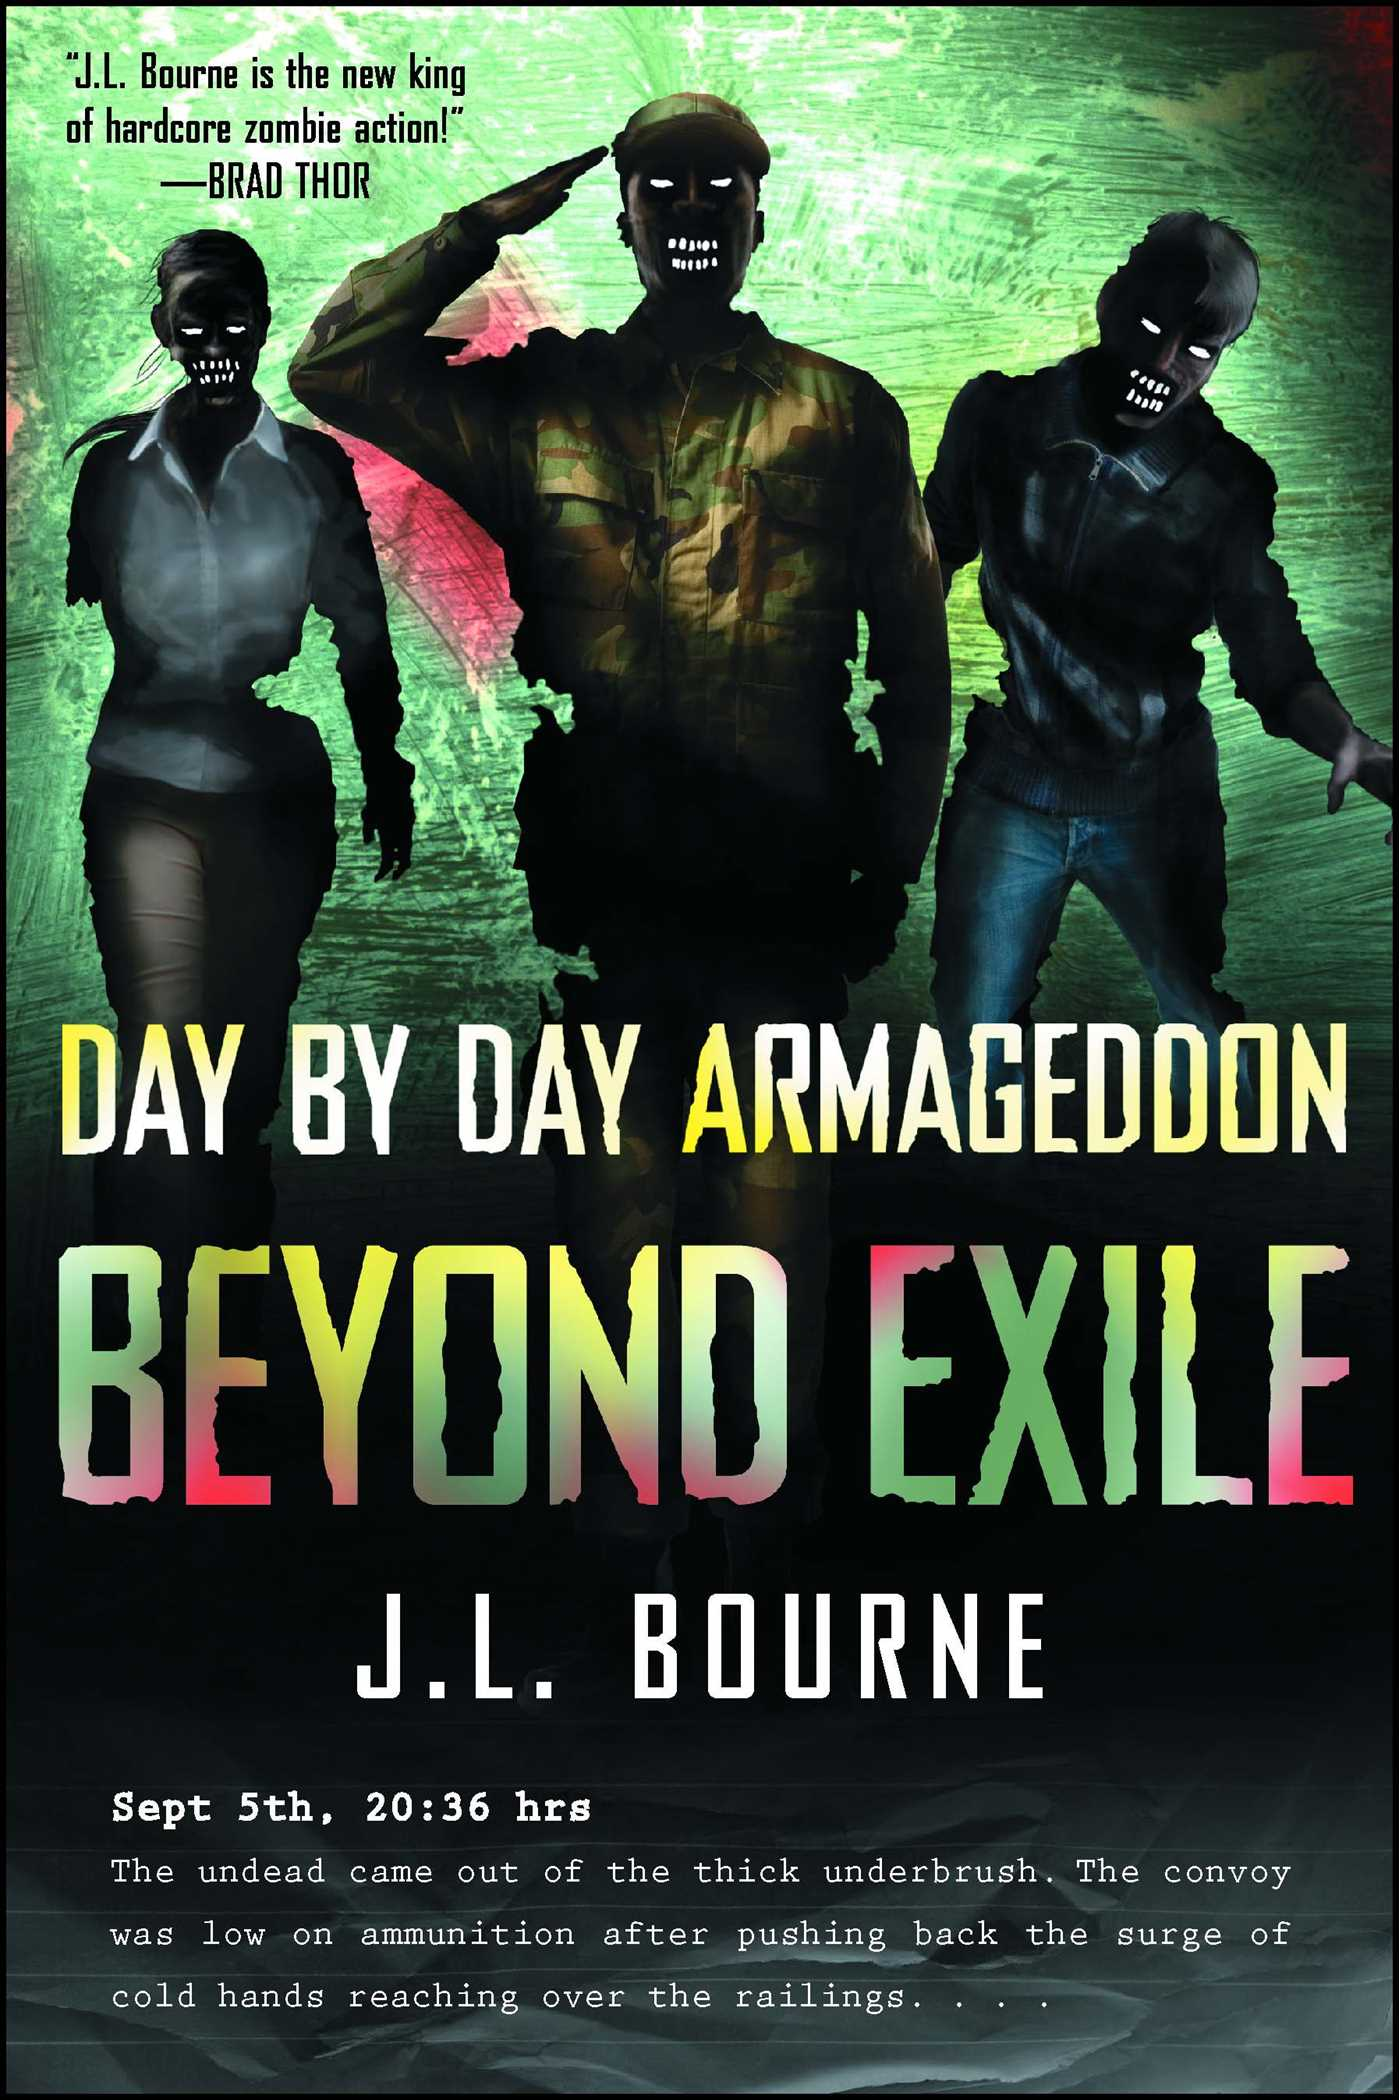 Beyond exile day by day armageddon 9781439177532 hr